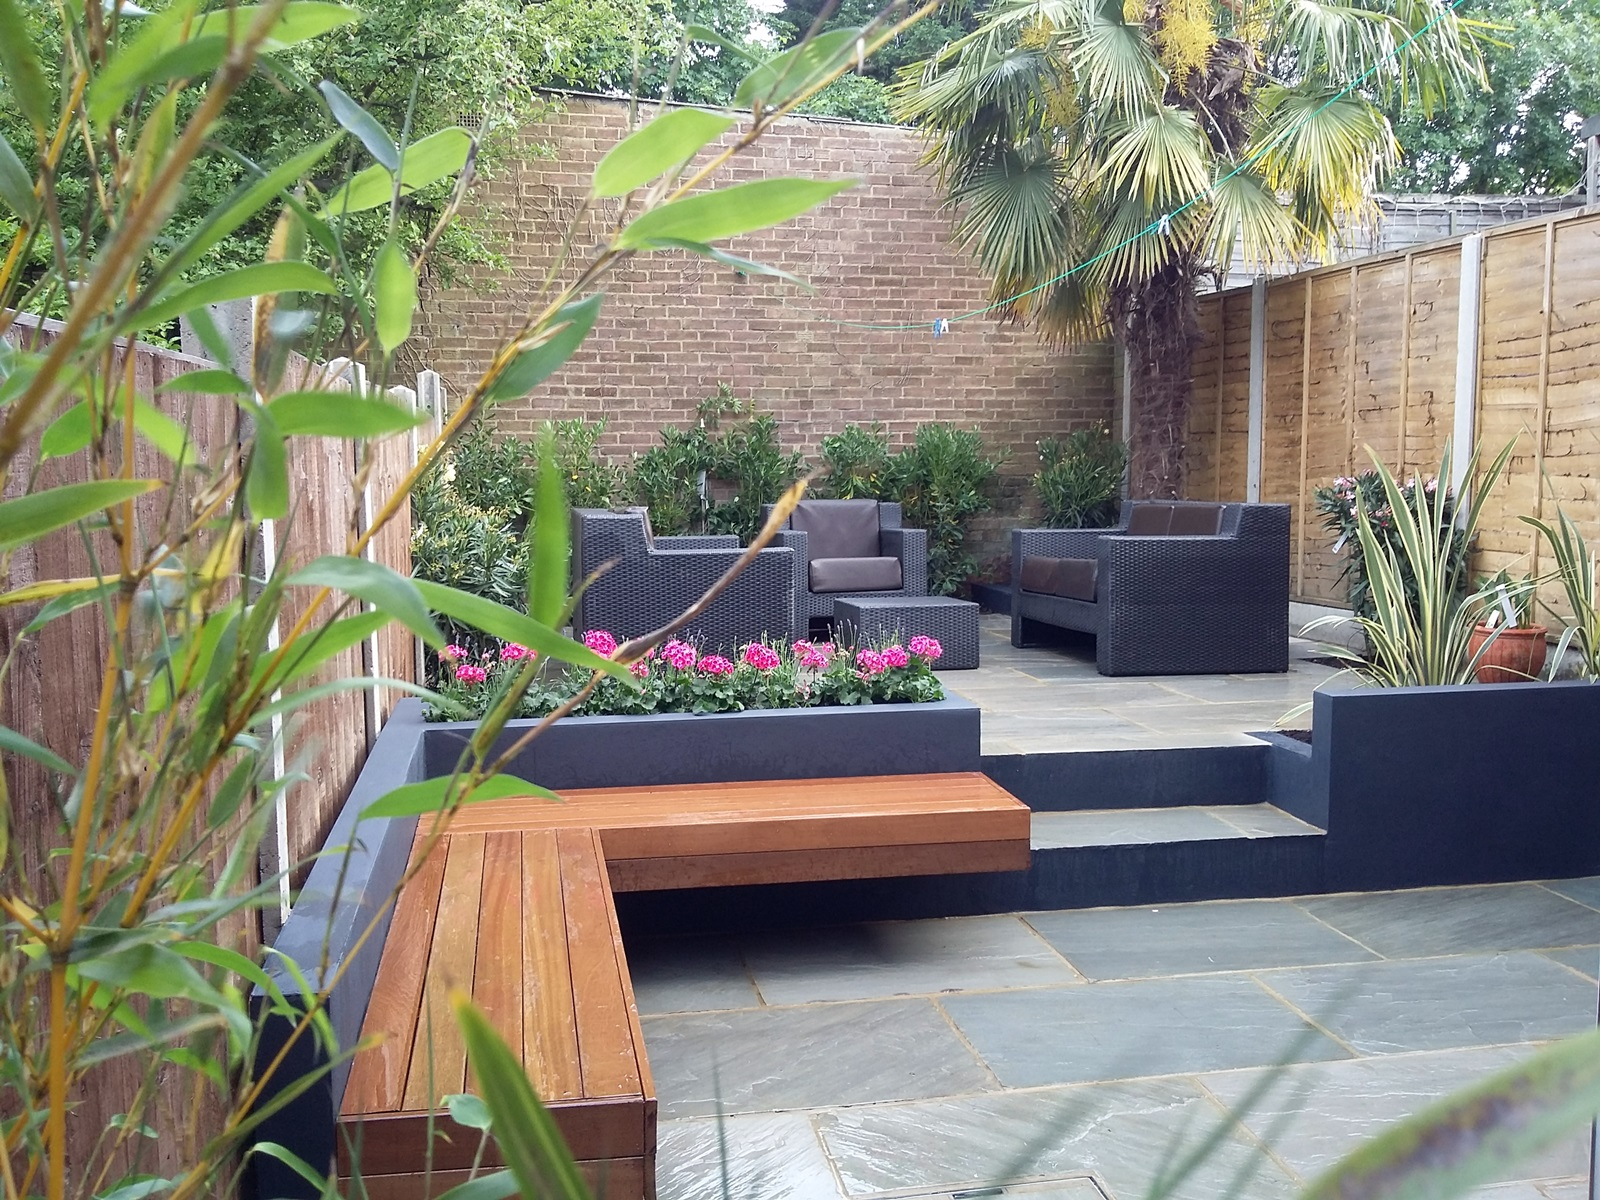 Modern garden design london natural sandstone paving patio for Modern garden design